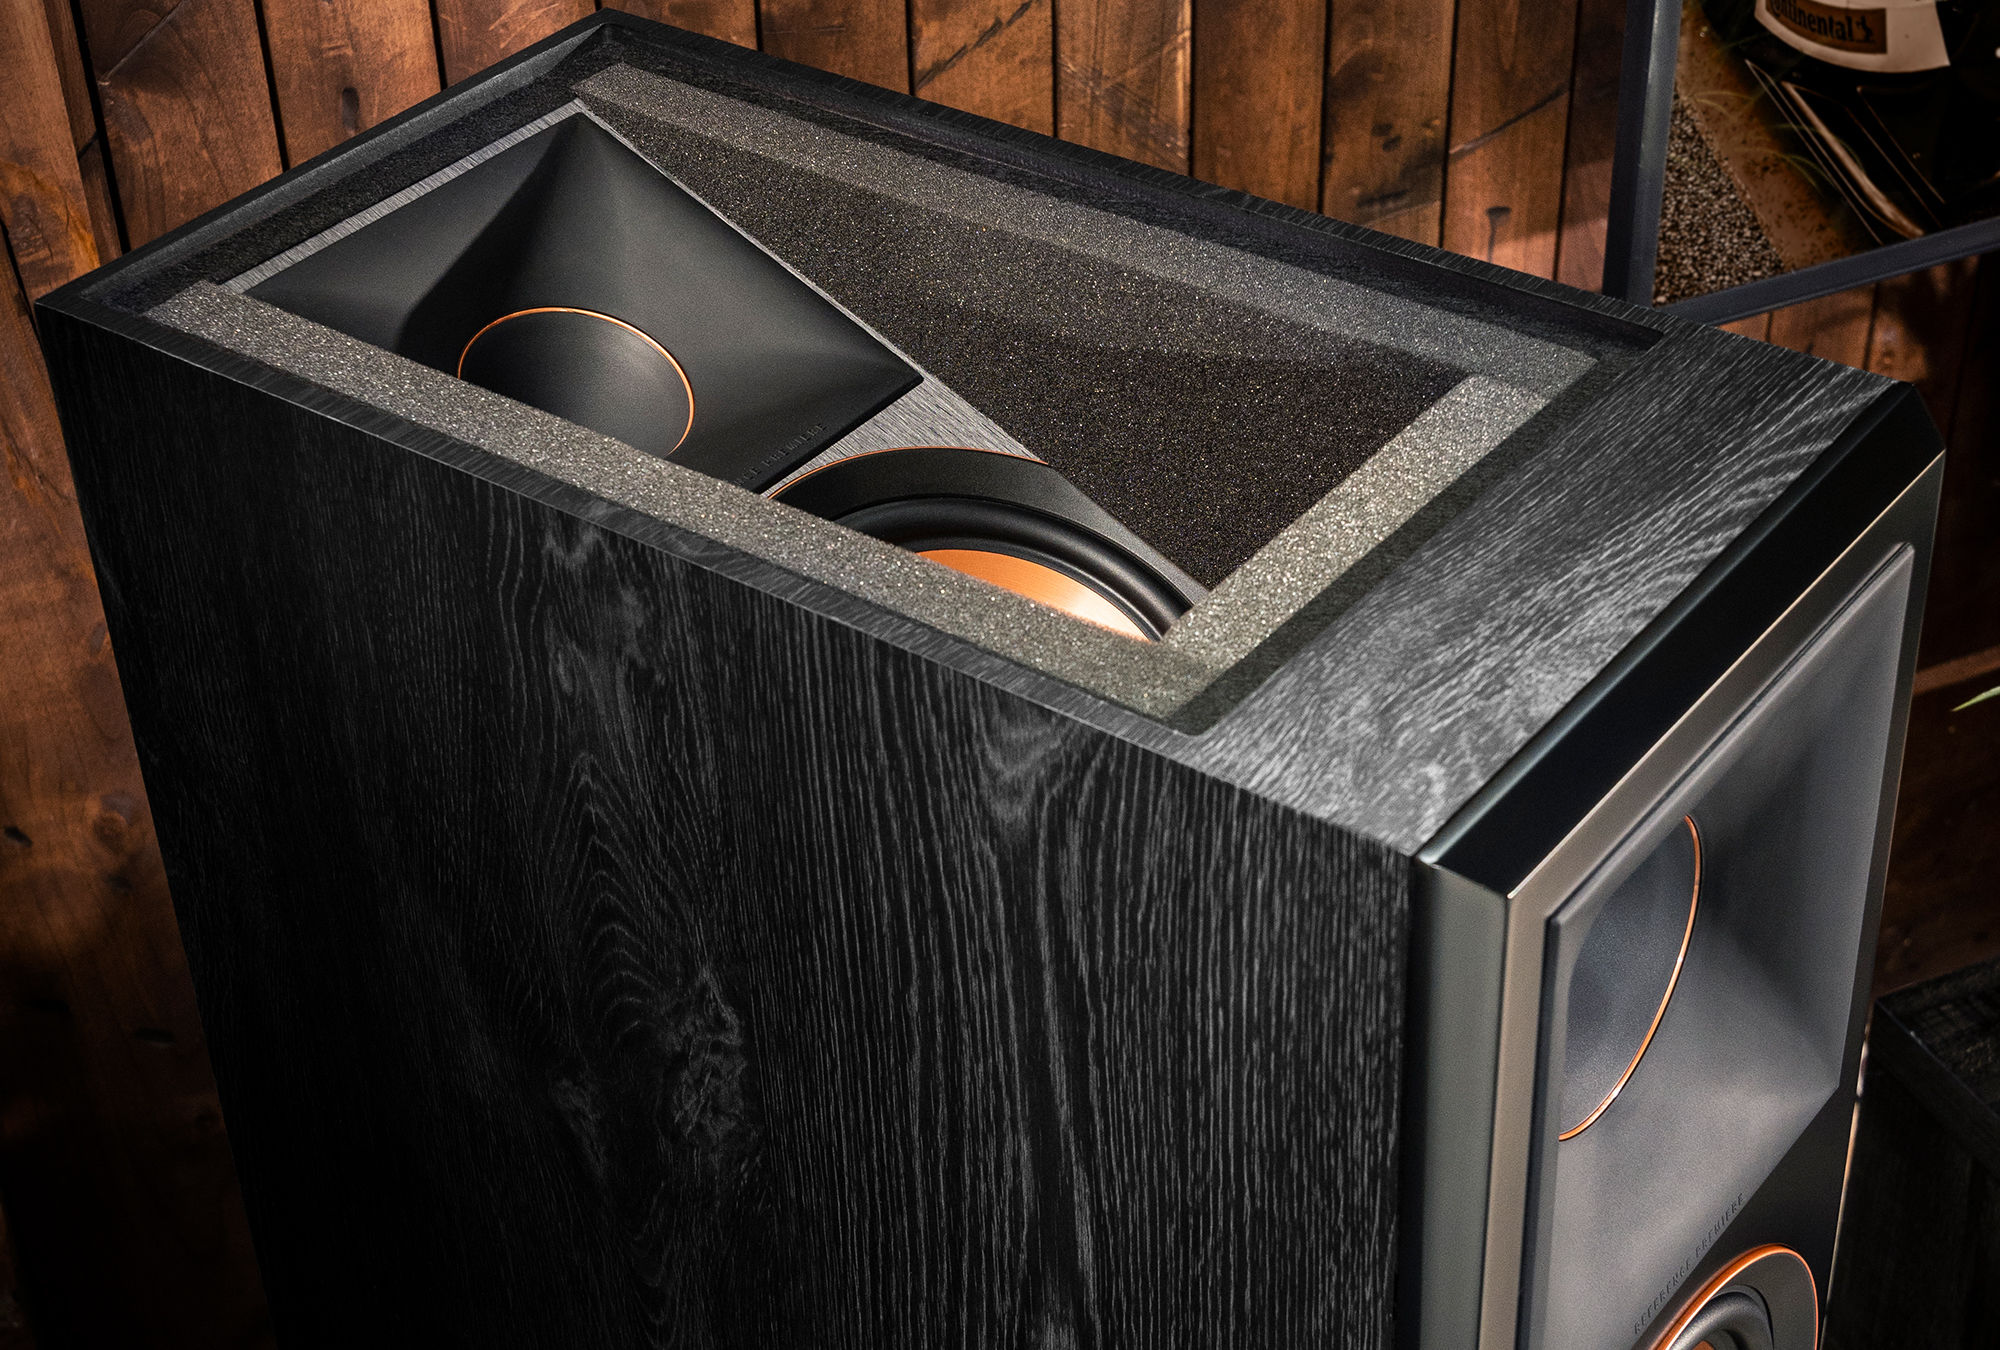 Klipsch RP-8060F floorstanding speaker top view